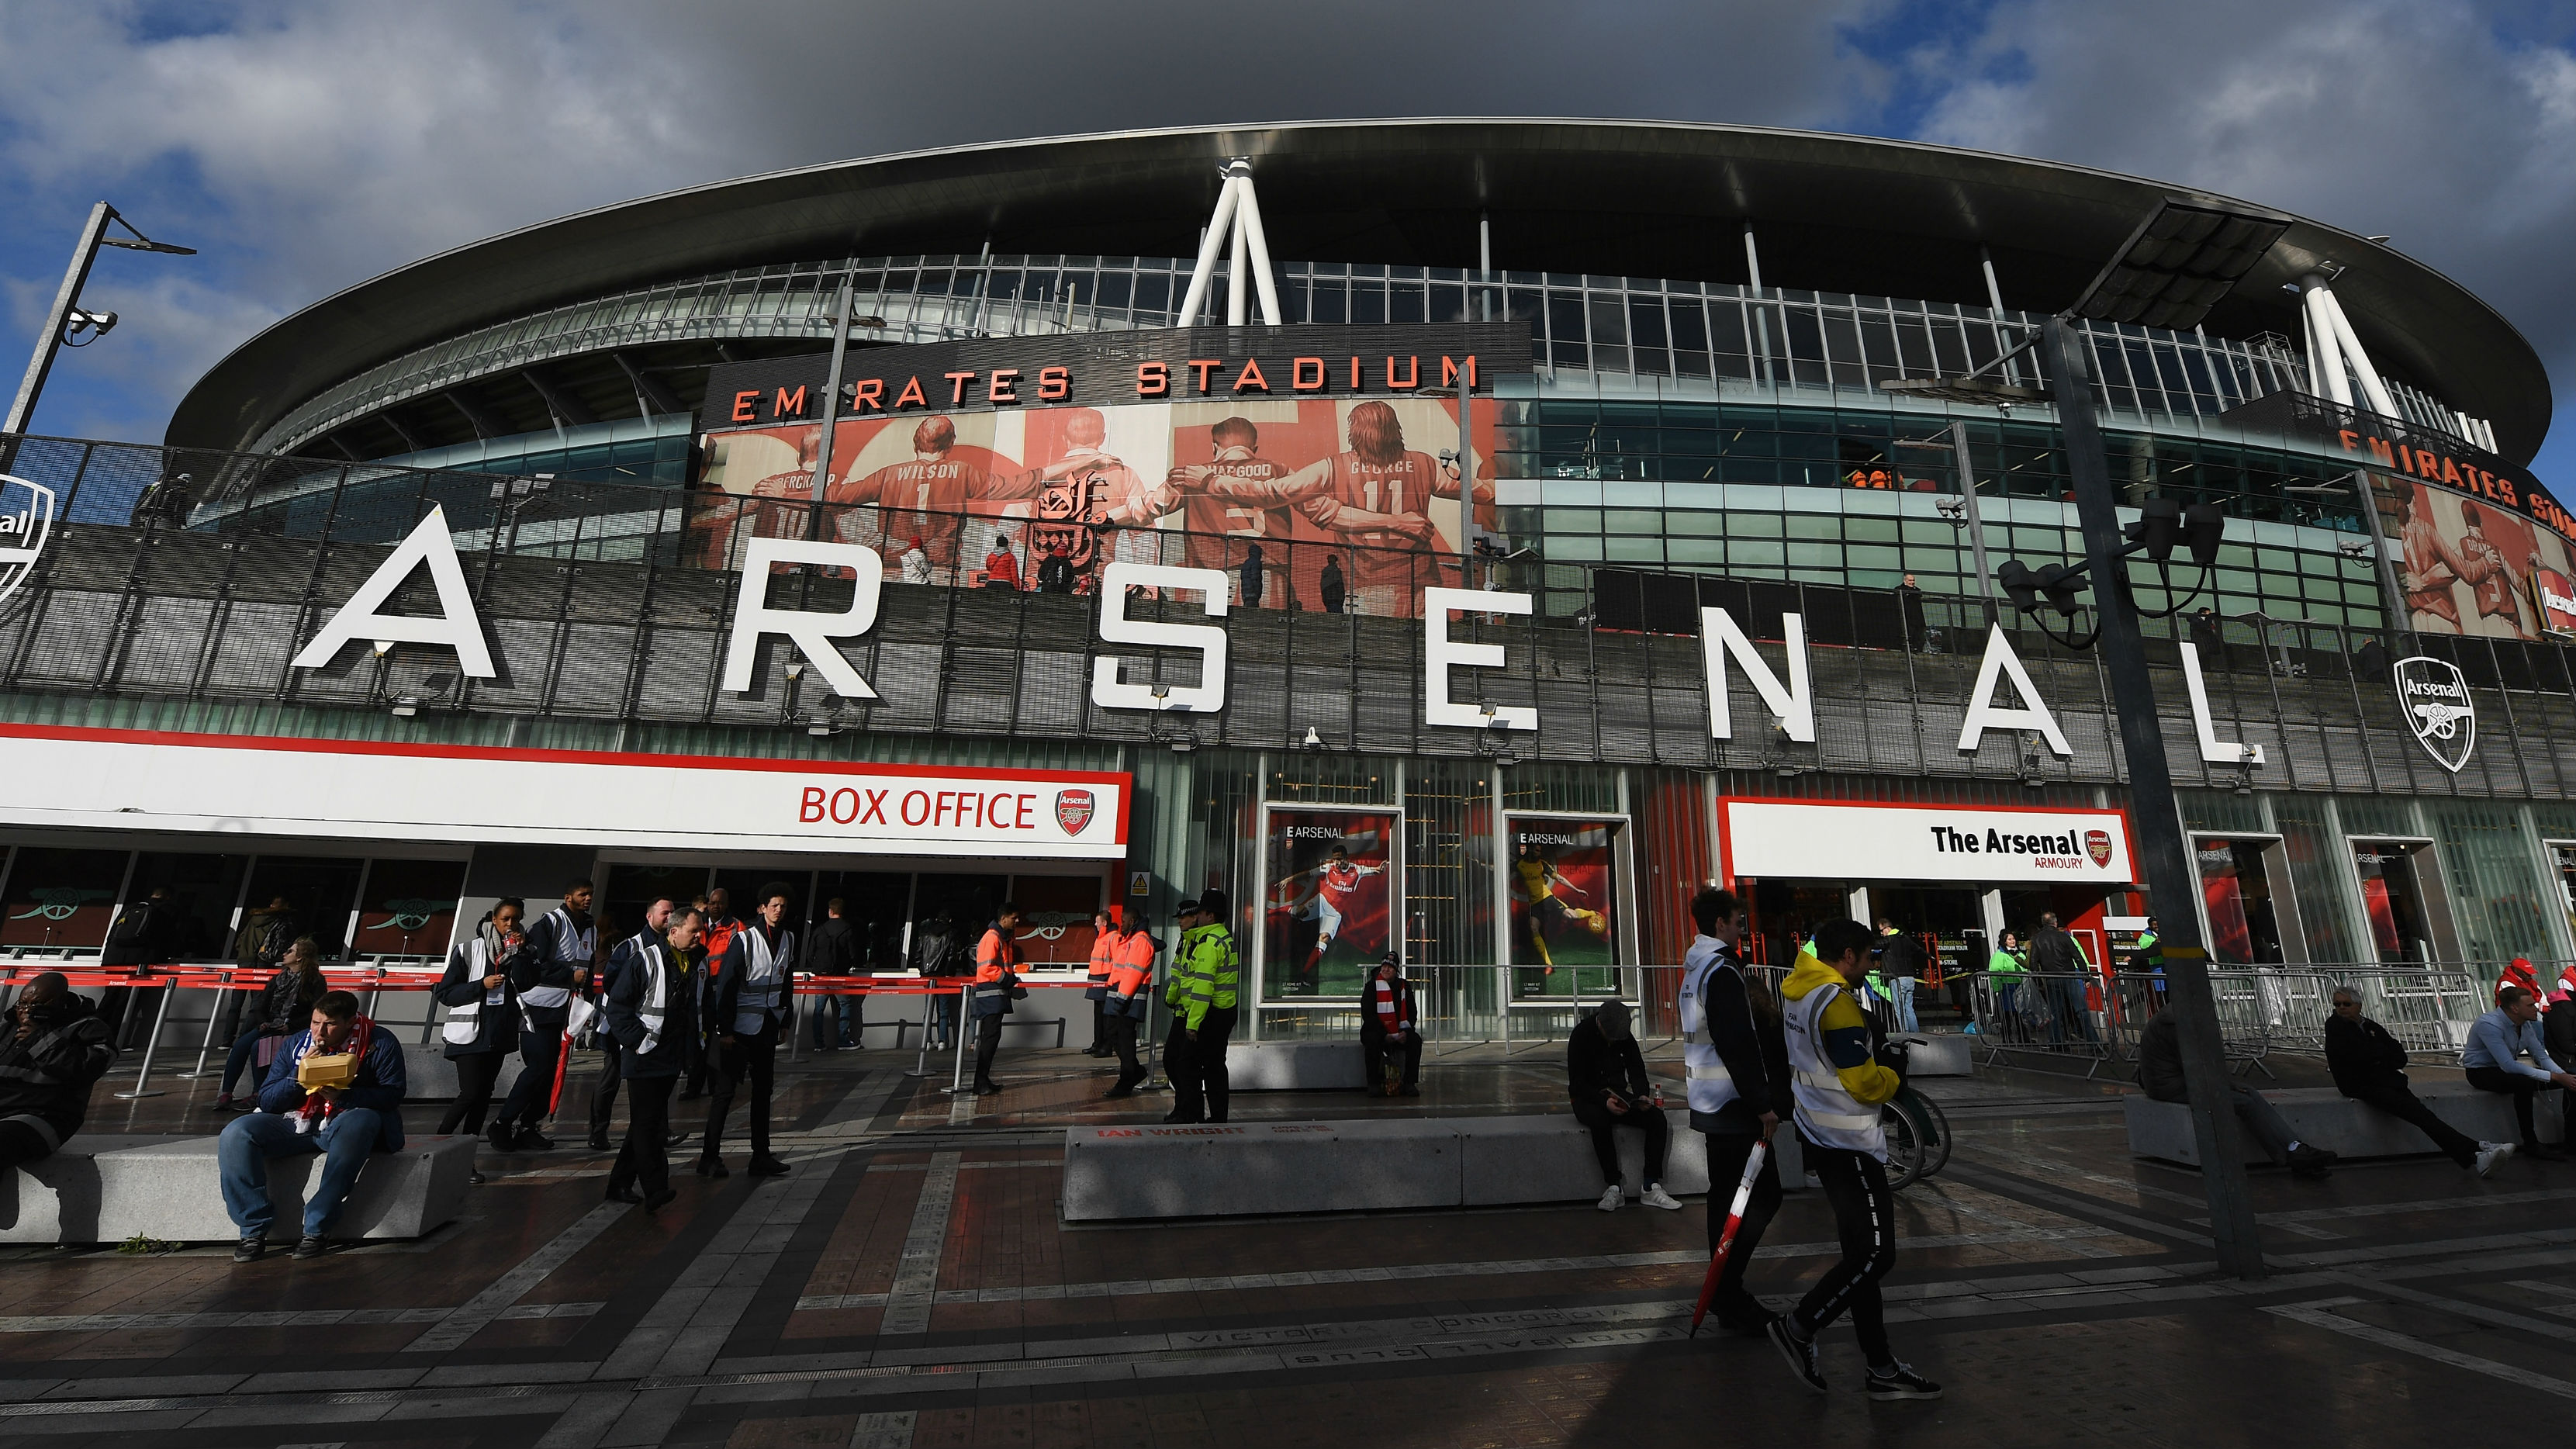 Cash-strapped Arsenal take out £120m Bank of England loan amid financial constraints of coronavirus pandemic